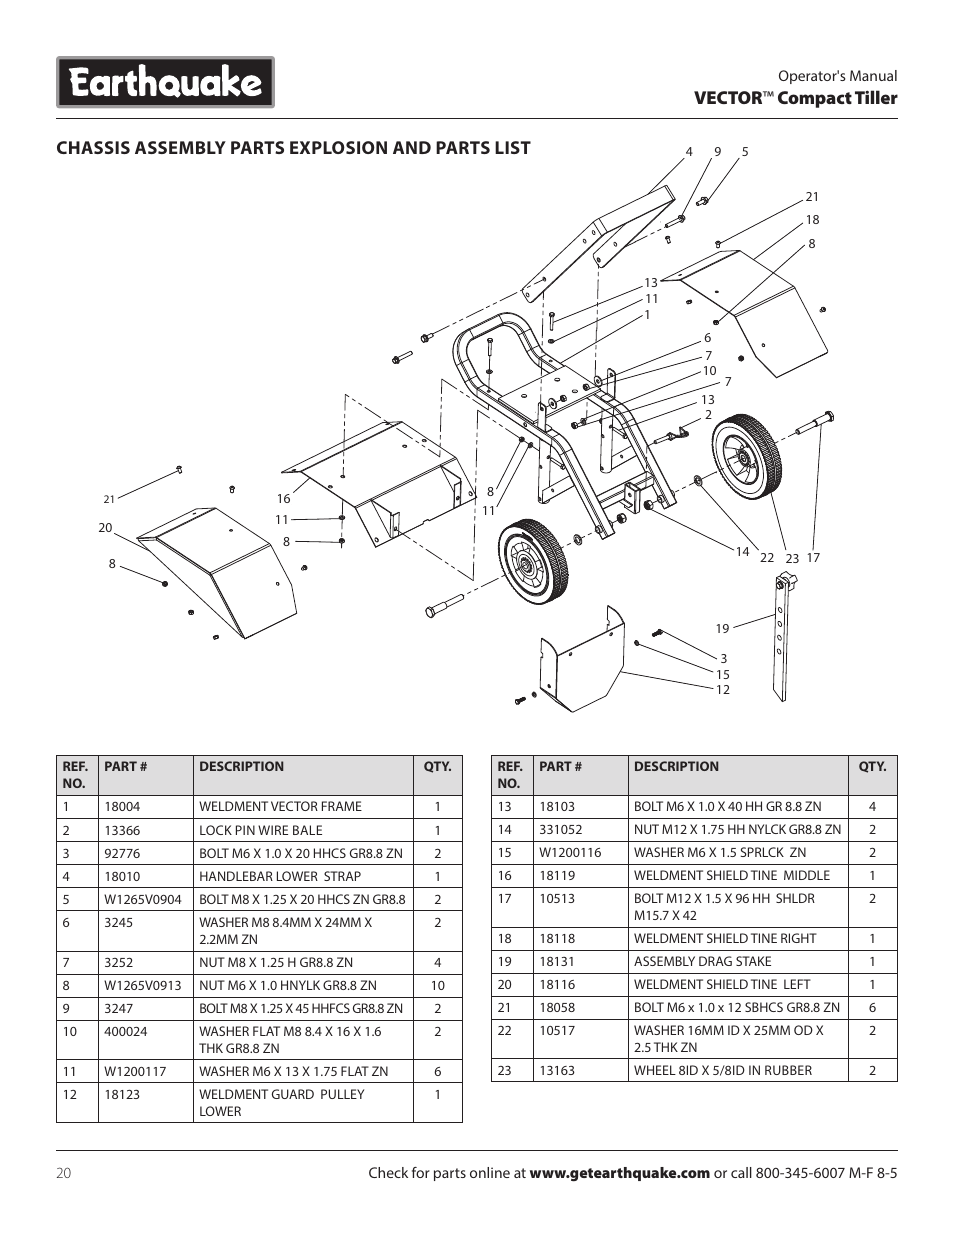 Vector ™ compact tiller, Chassis assembly parts explosion